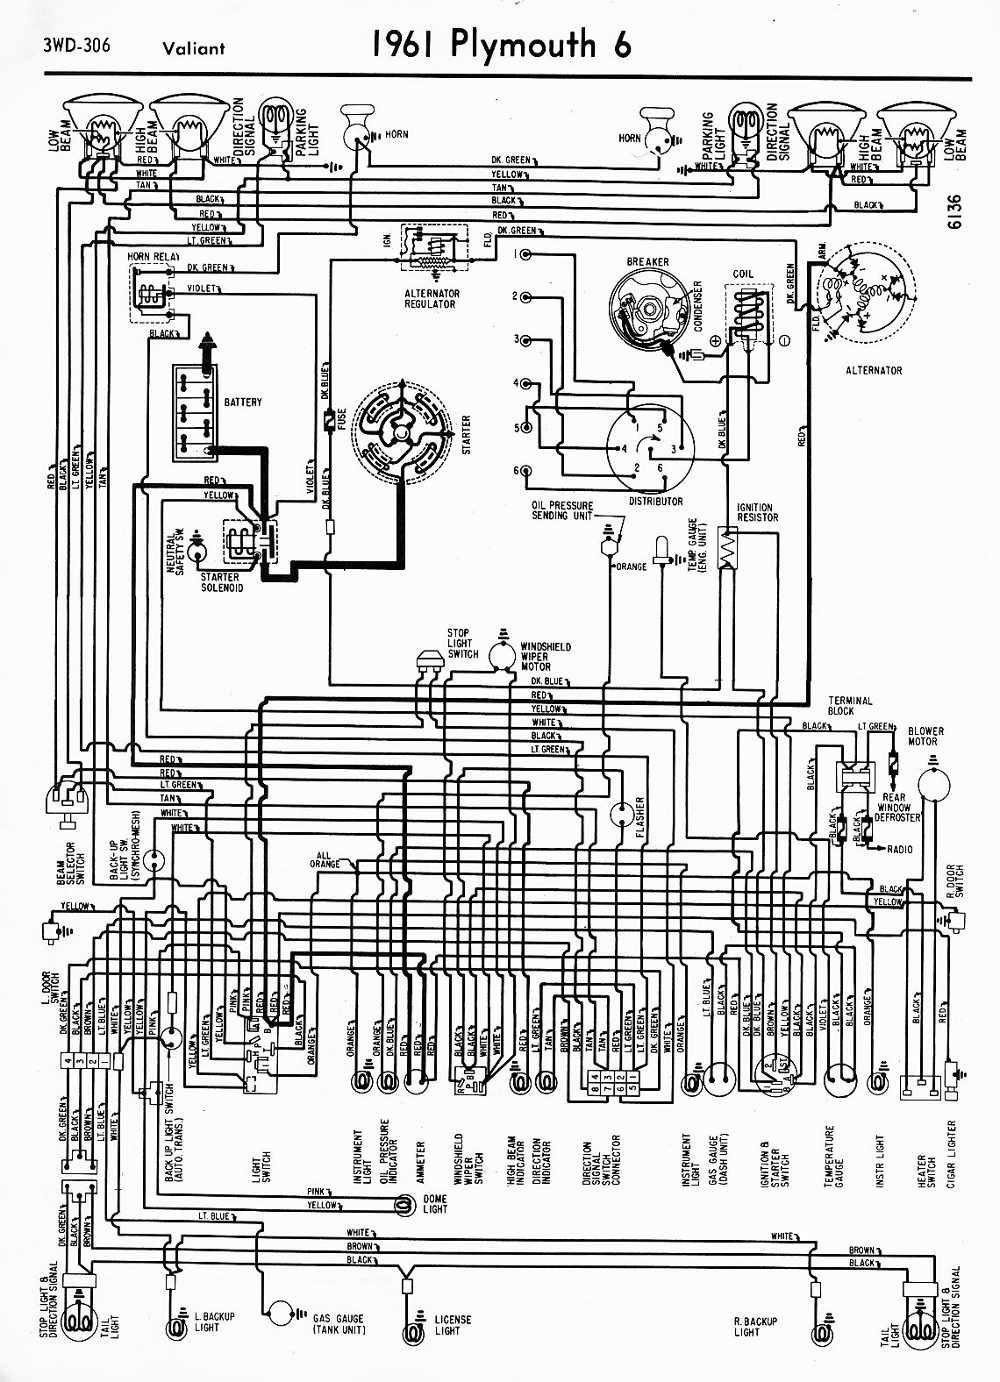 63 valiant wiring diagram 25 wiring diagram images